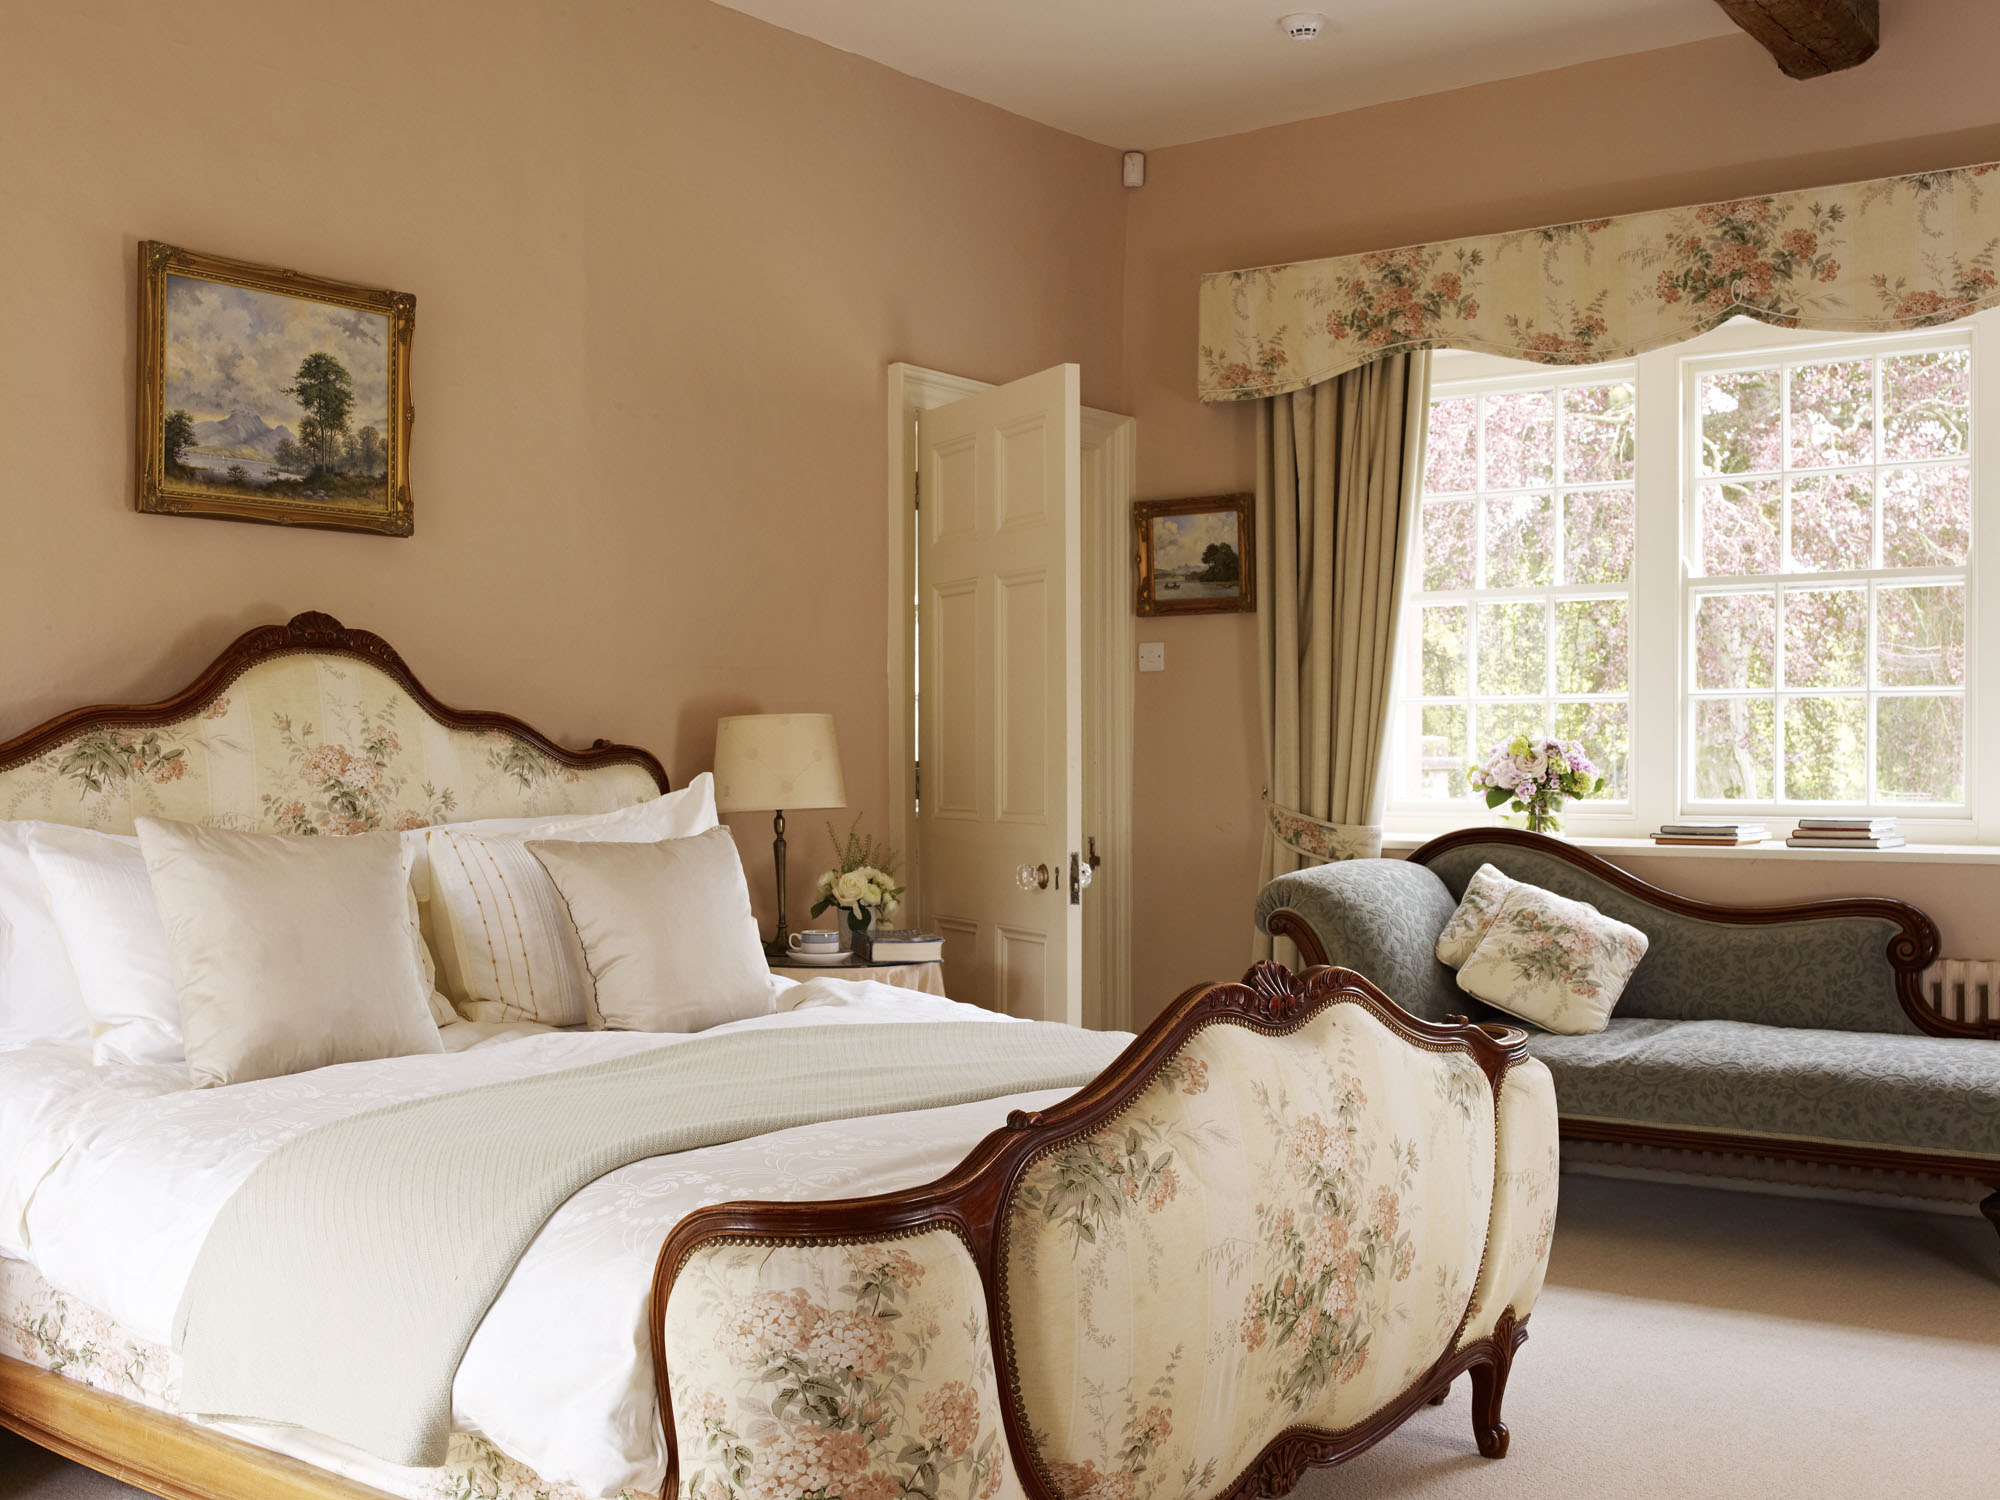 Melmerby hall 4 kate tom 39 s for Bedroom designs with attached bathroom and dressing room